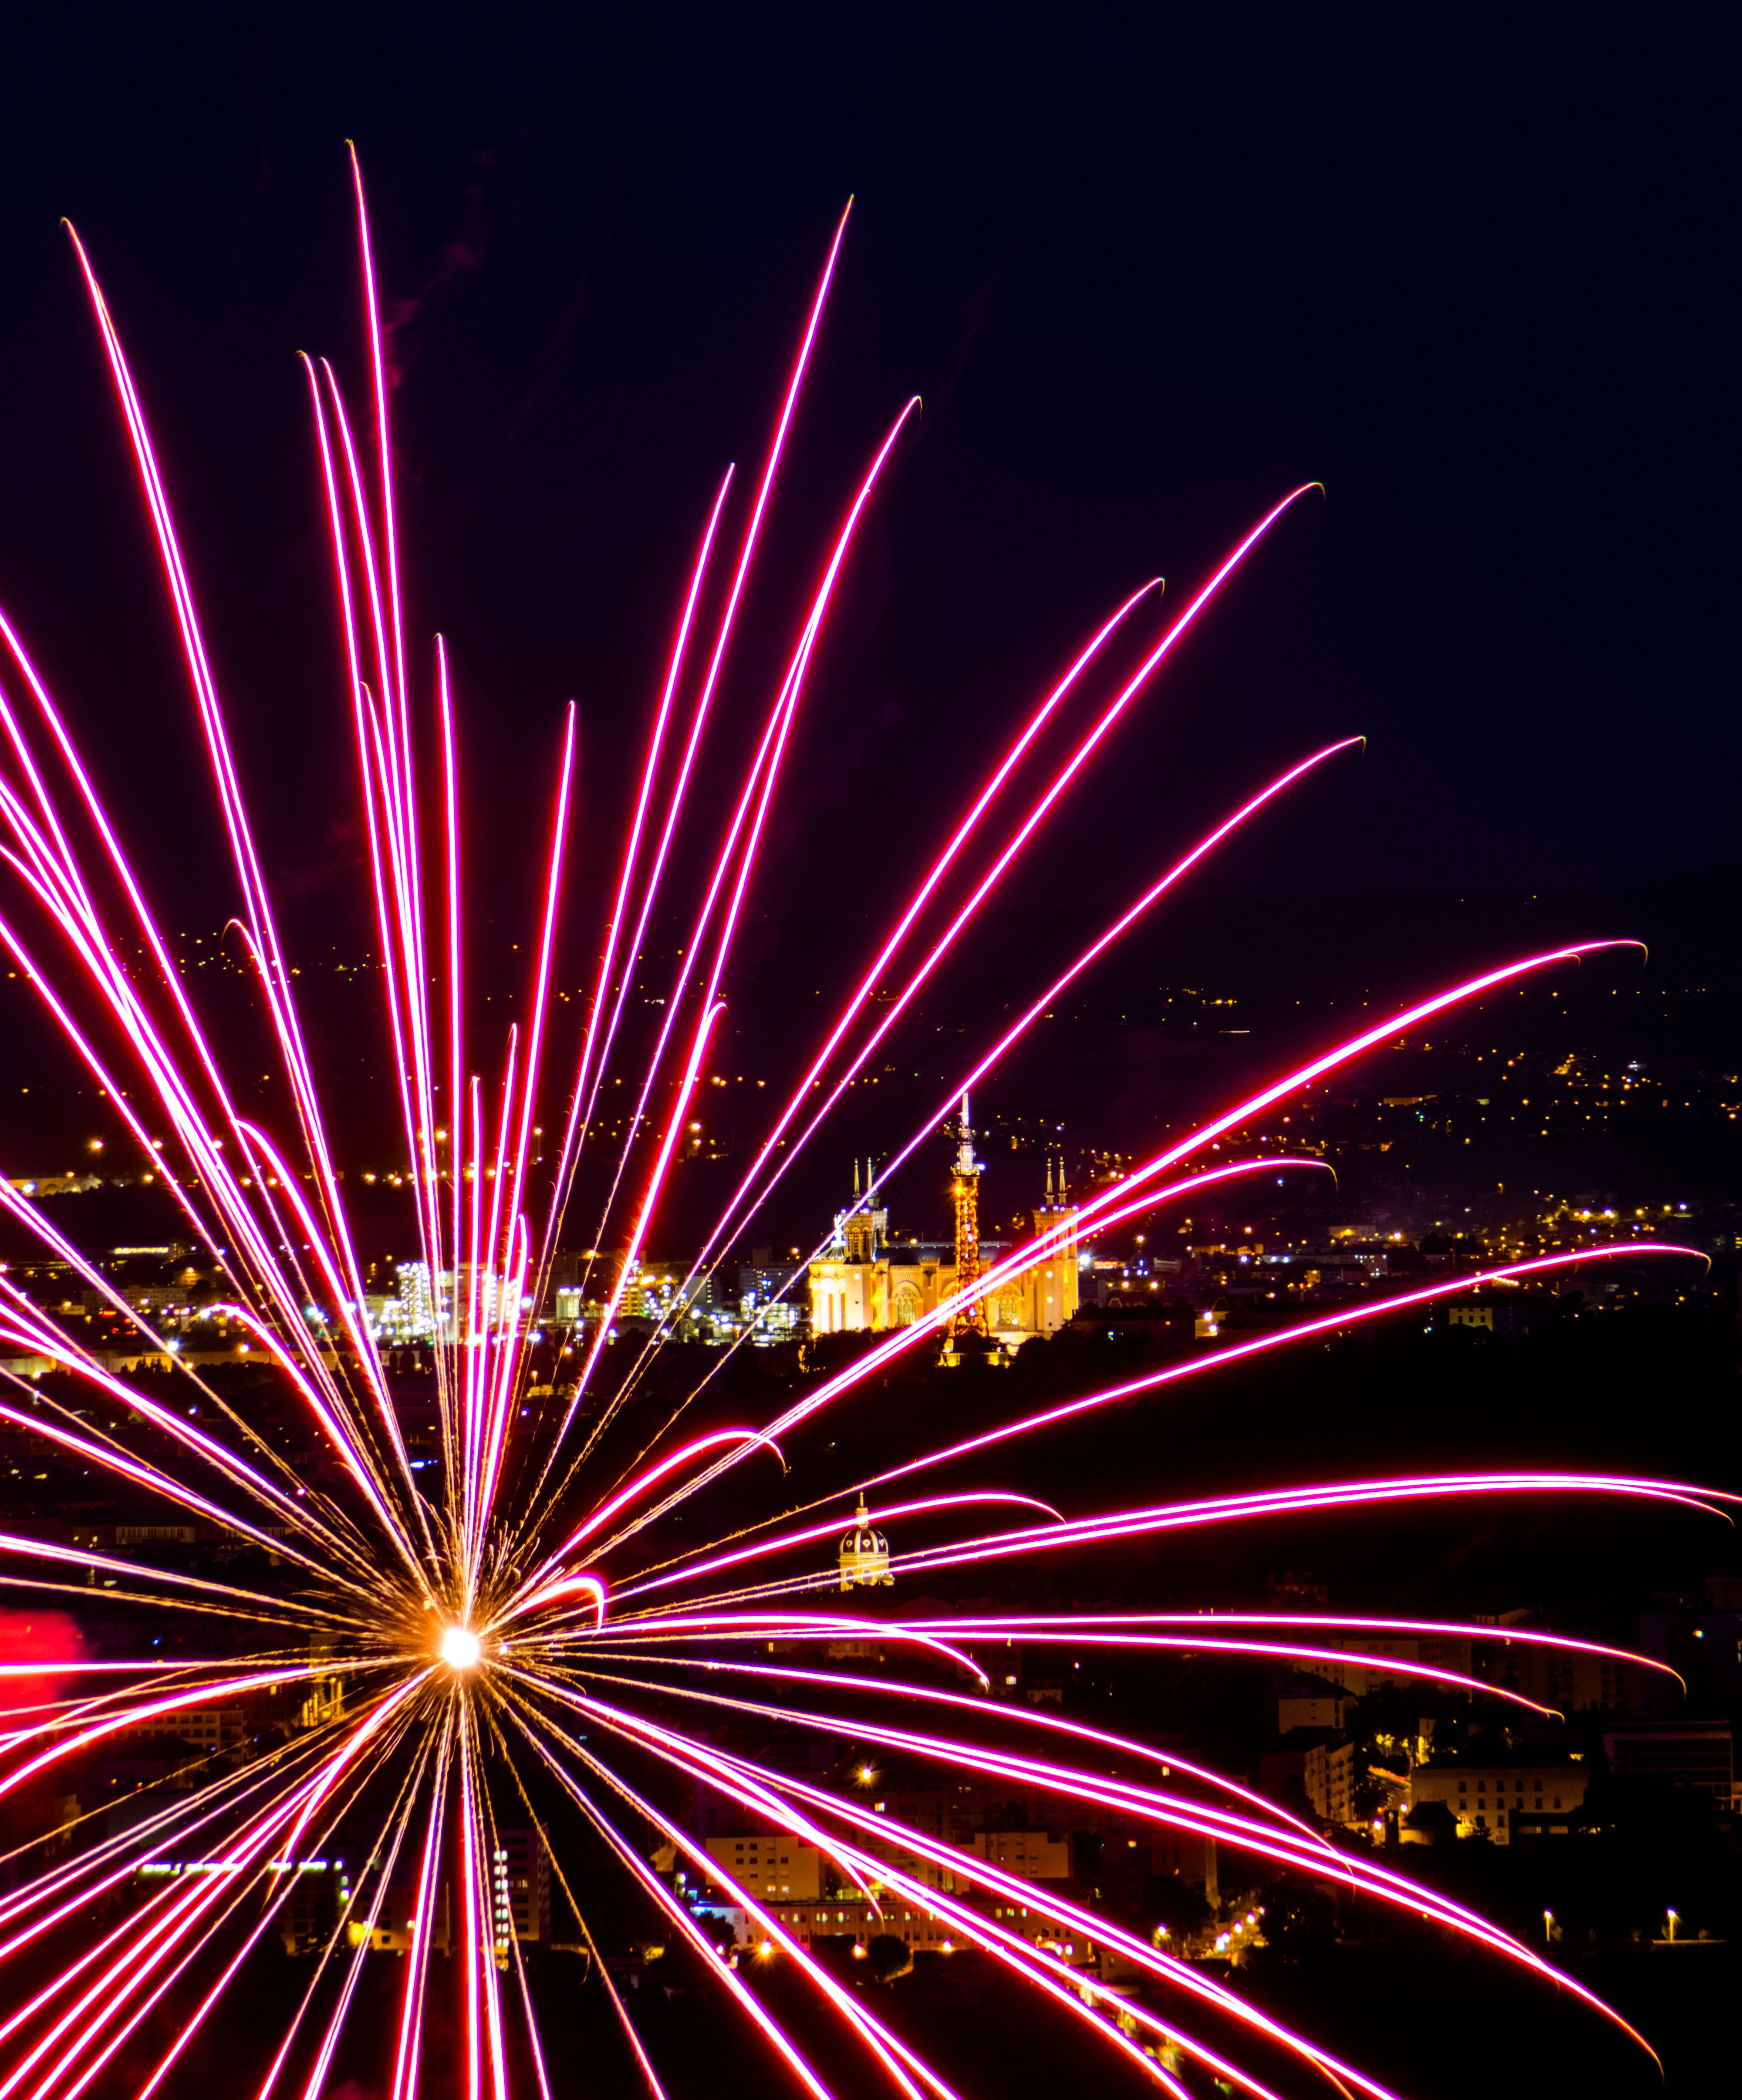 A purple fireworks display in France.